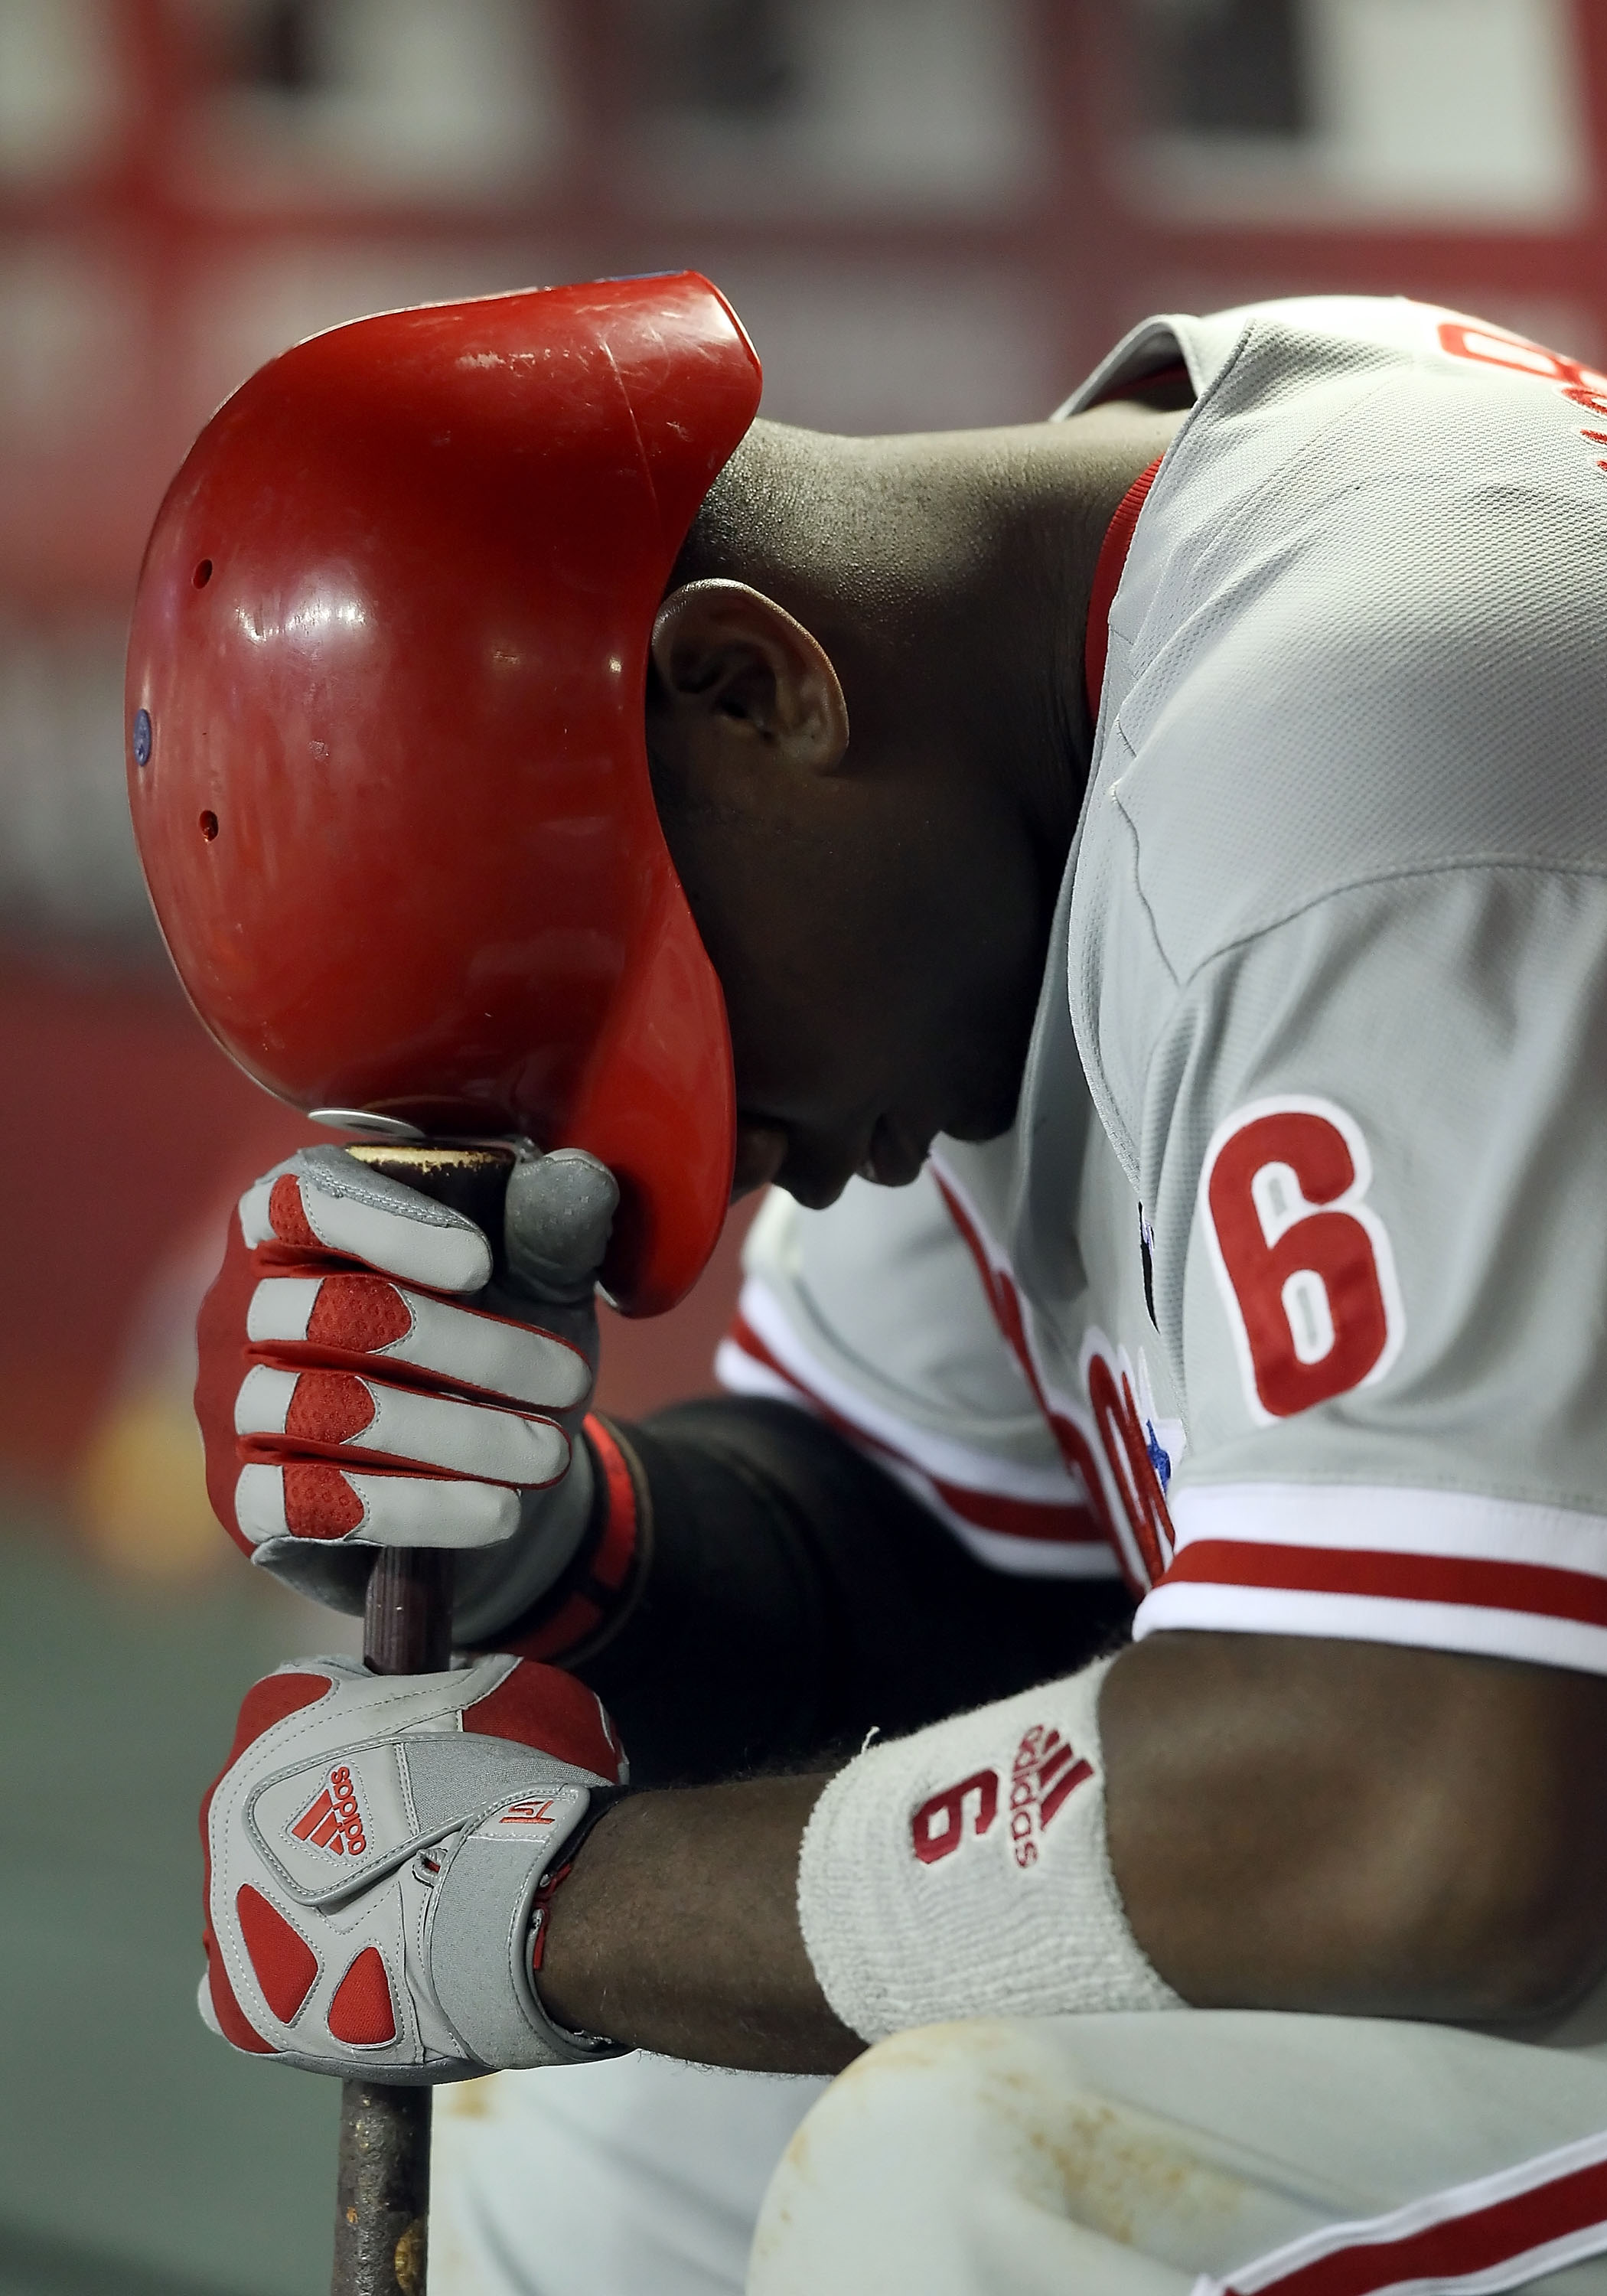 PHOENIX, AZ - APRIL 26:  Ryan Howard #6 of the Philadelphia Phillies sits in the dugout during the Major League Baseball game against the Arizona Diamondbacks at Chase Field on April 26, 2011 in Phoenix, Arizona. The Diamondbacks defeated the Phillies 7-5